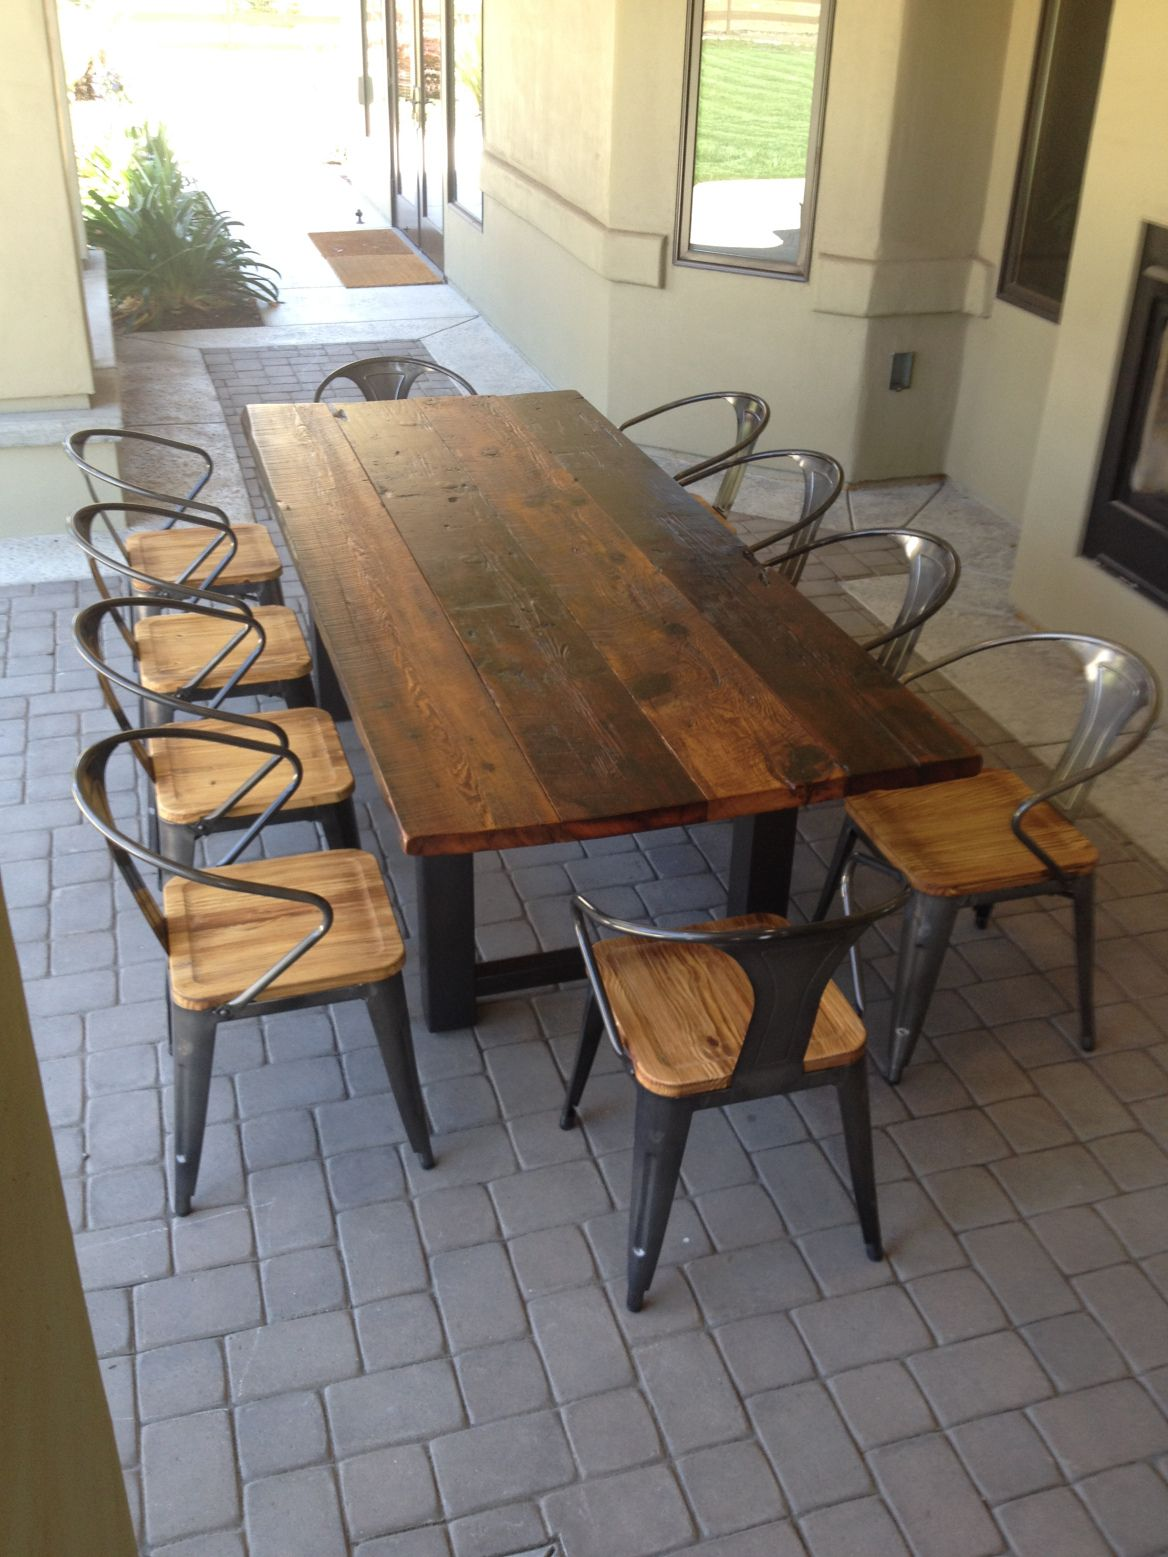 Reclaimed Wood And Steel Outdoor Dining Table 1 Patio Furniture